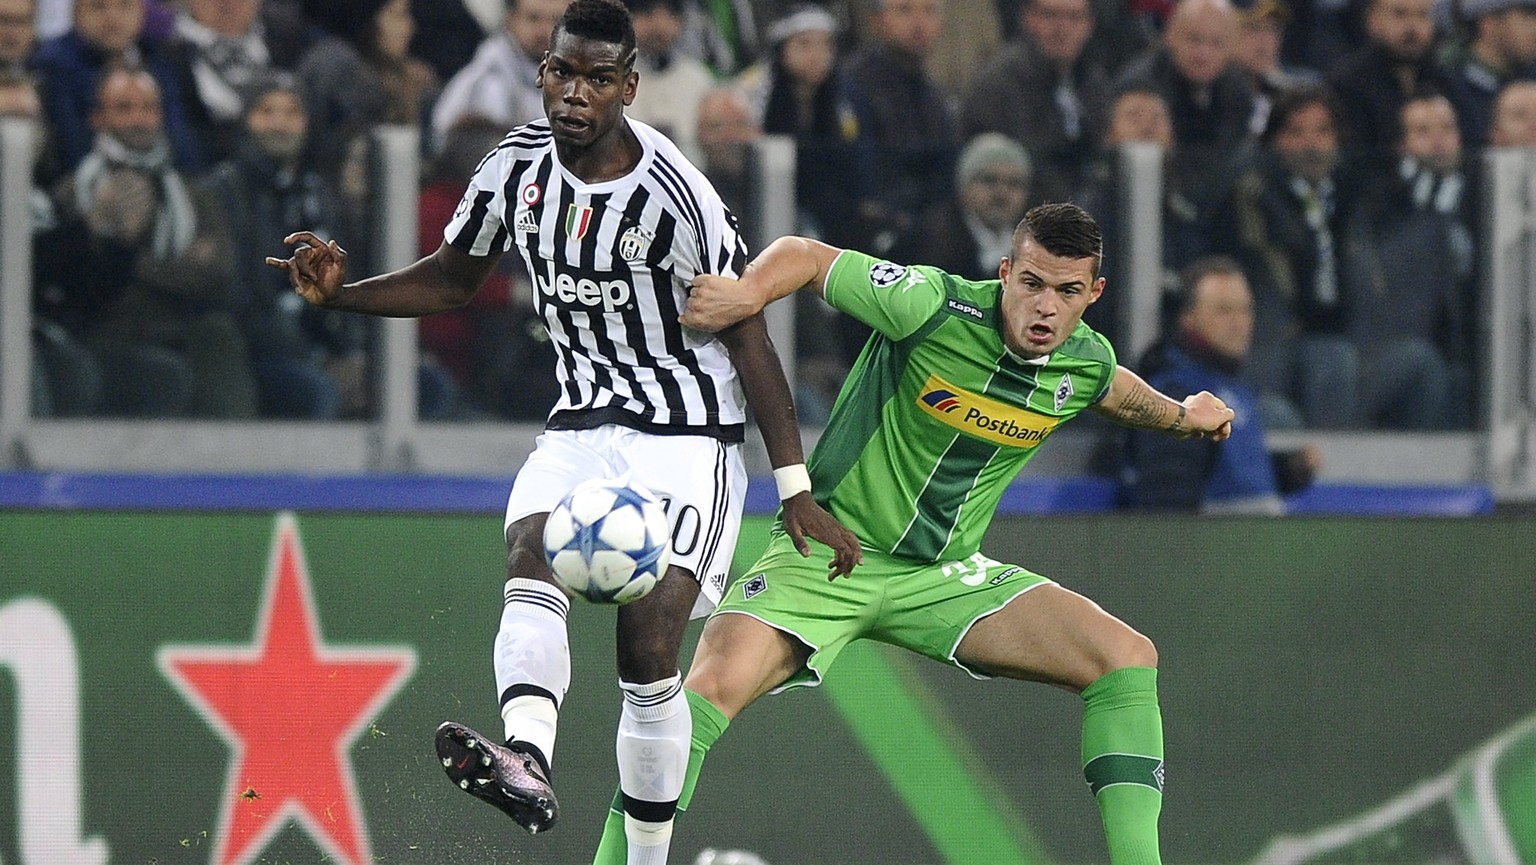 Juventus' Paul Lamine Pogba (L) fights for the ball with Borussia Monchengladbach's Granit Xhaka during their Champions League Group D soccer match at Juventus Stadium in Turin October 21, 2015. REUTERS/Giorgio Perottino